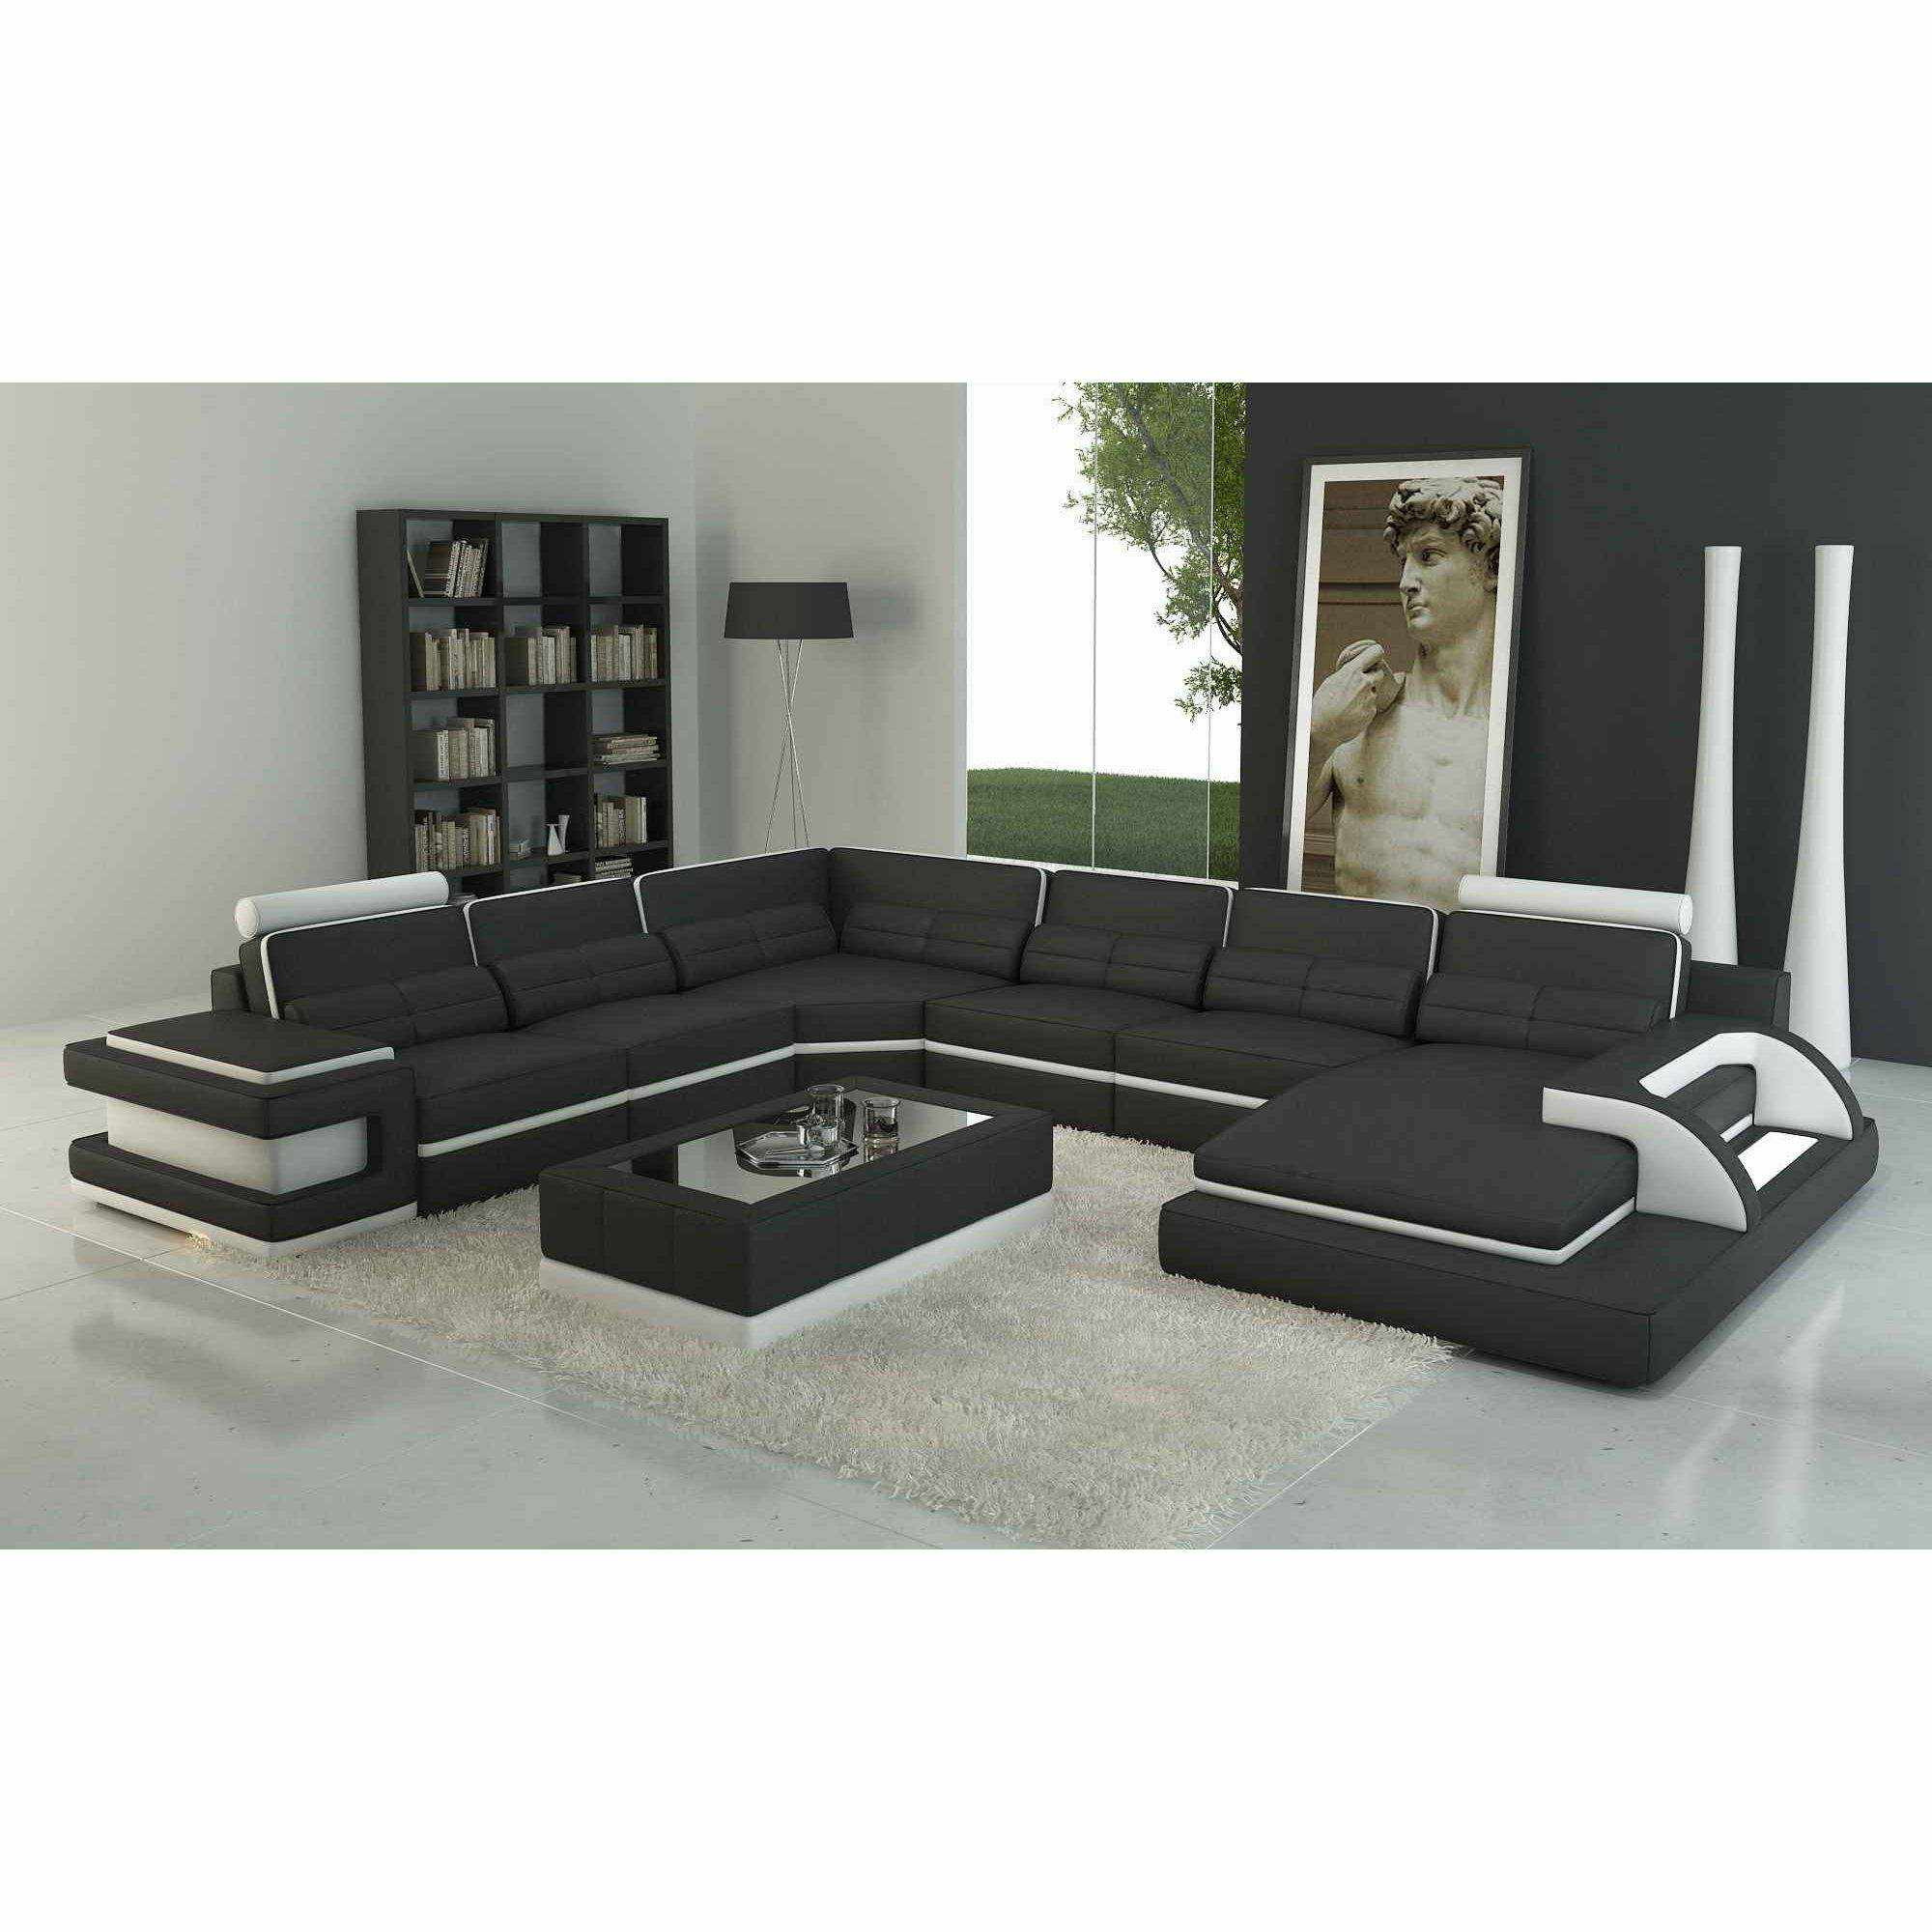 deco in paris canape panoramique cuir noir et blanc design avec lumiere ibiza panoramique. Black Bedroom Furniture Sets. Home Design Ideas